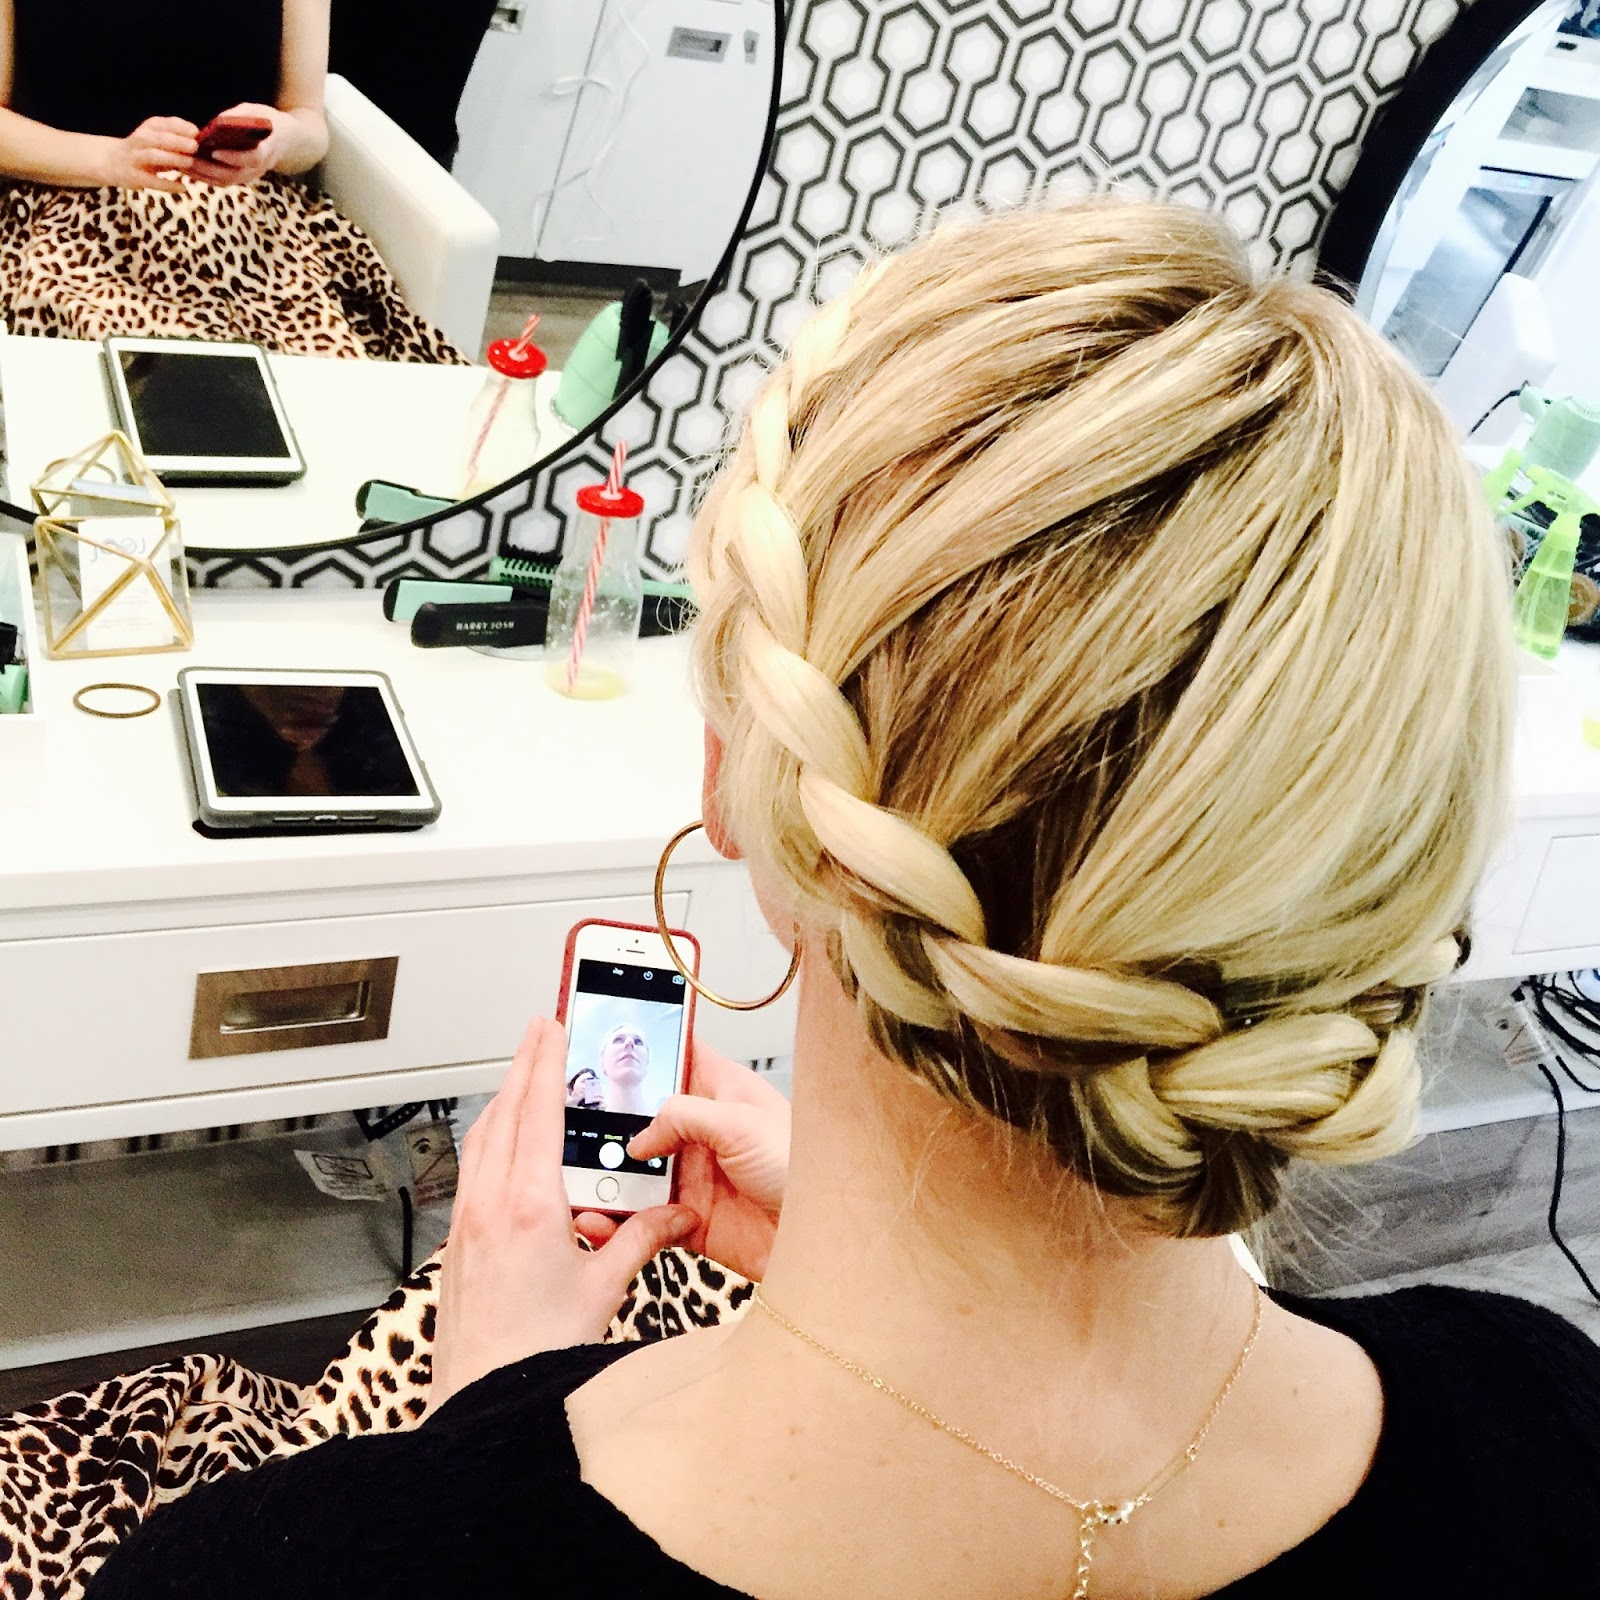 Day Dreamer Braid at JOOJ | all dressed up with nothing to drink...